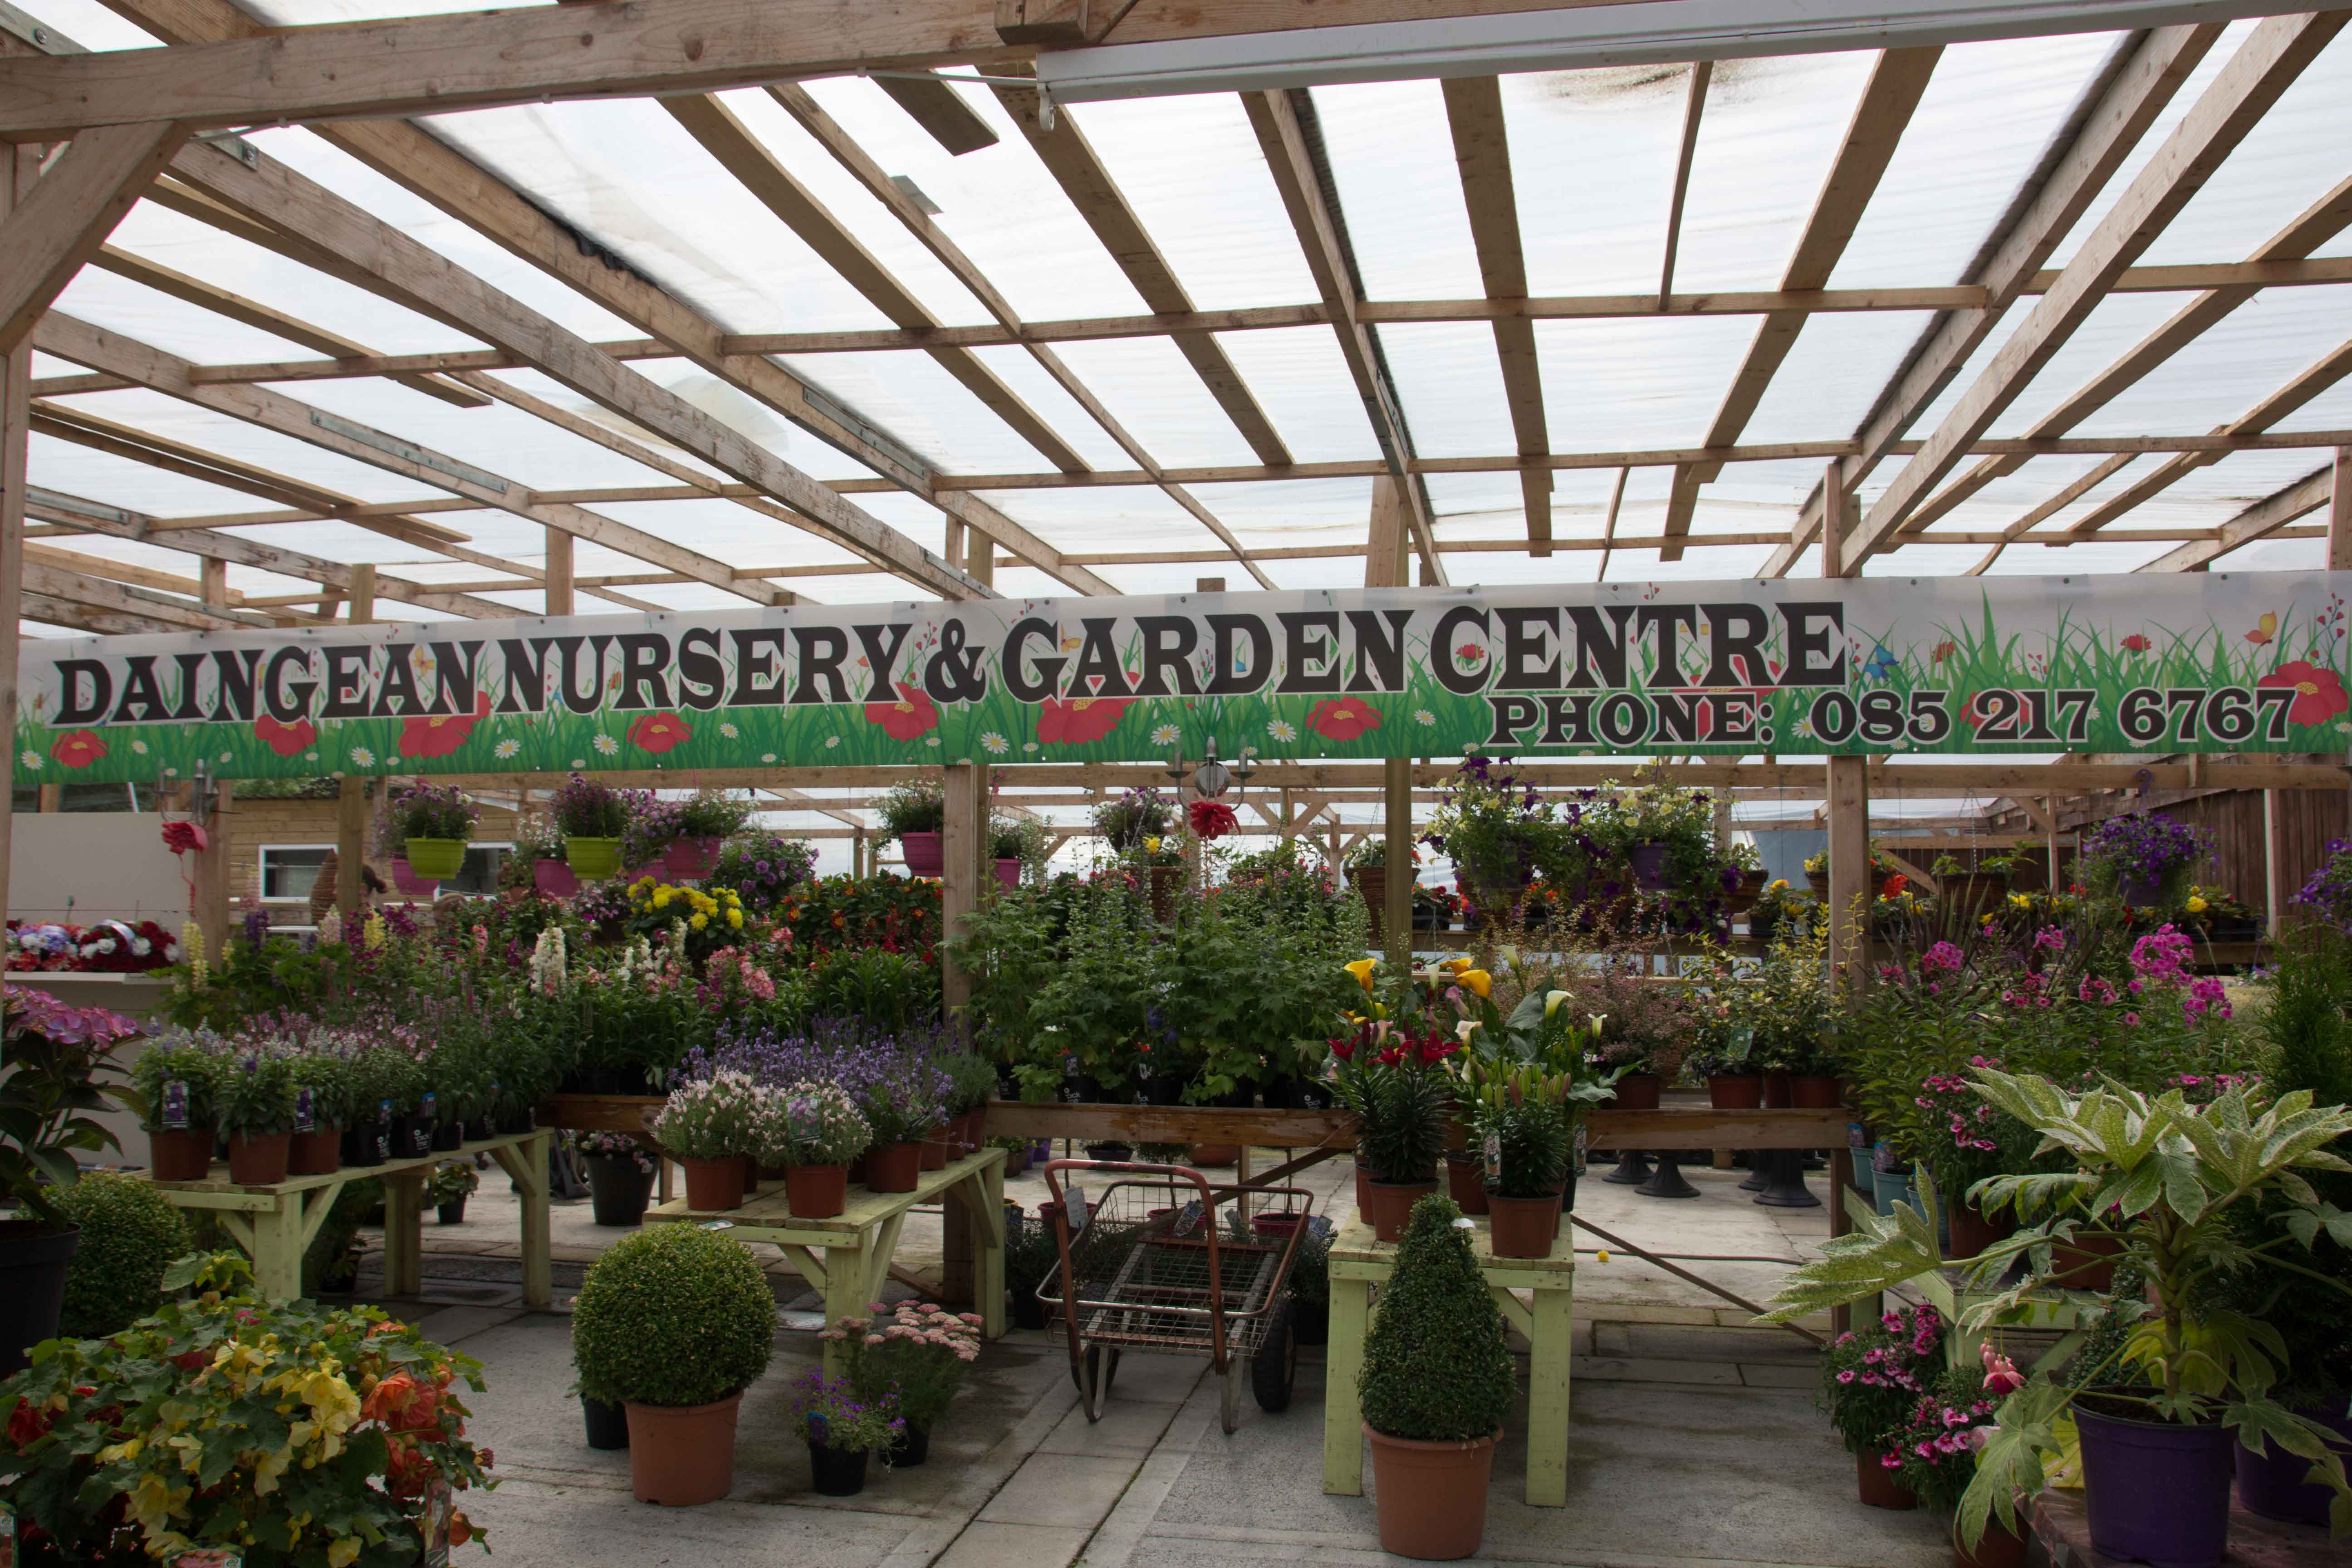 Daingean Nursery and Garden Centre